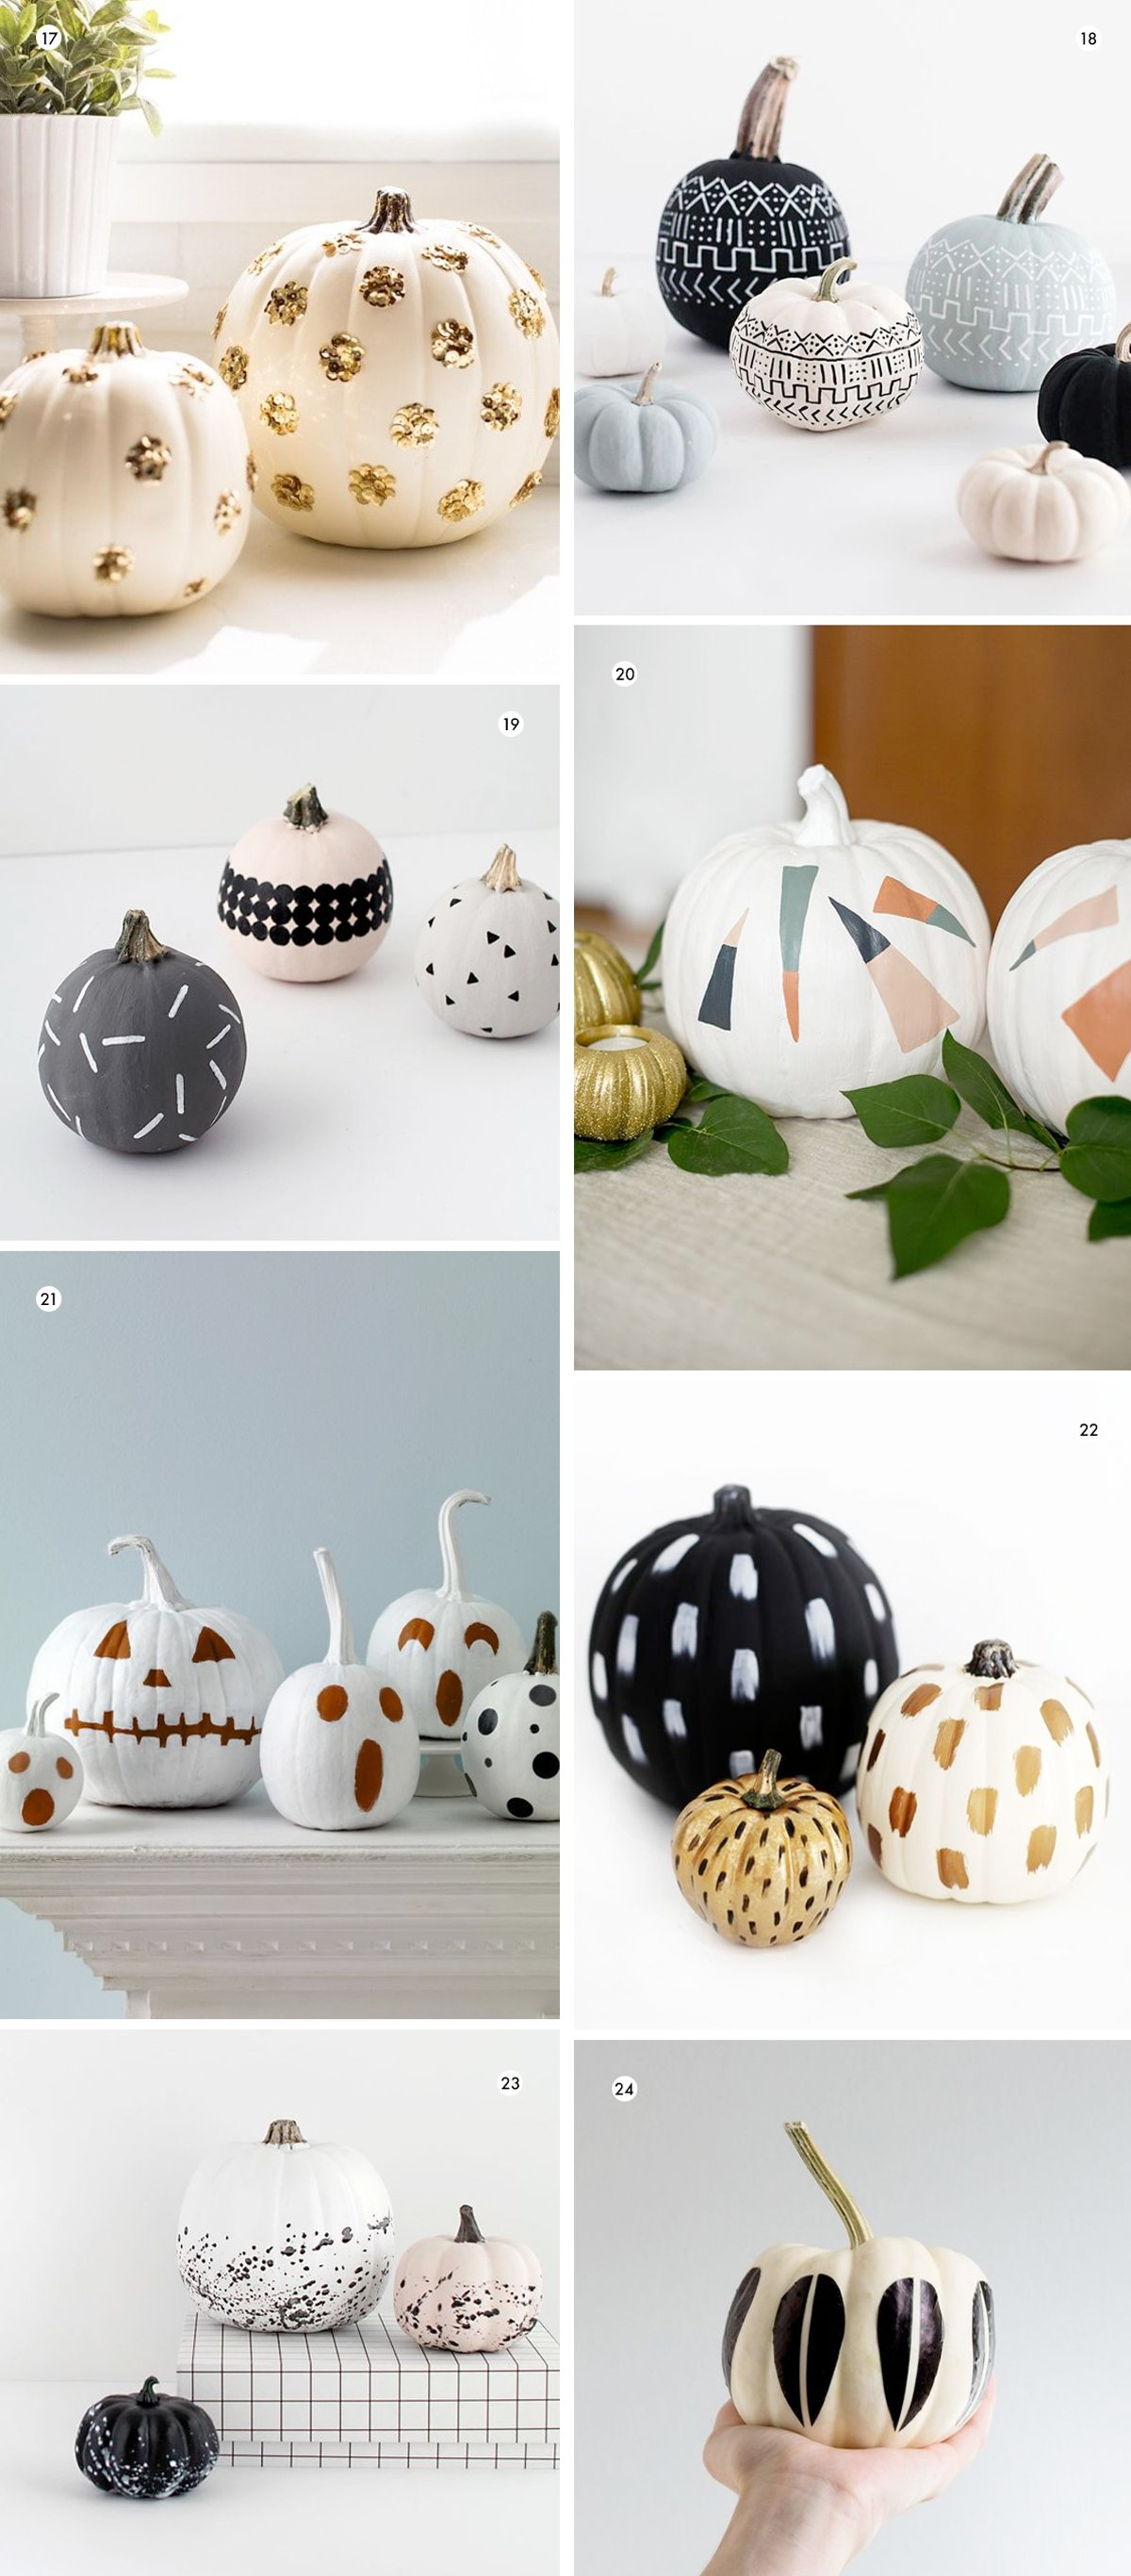 Various no-carve pumpkin decorating ideas for Halloween that are unique and modern